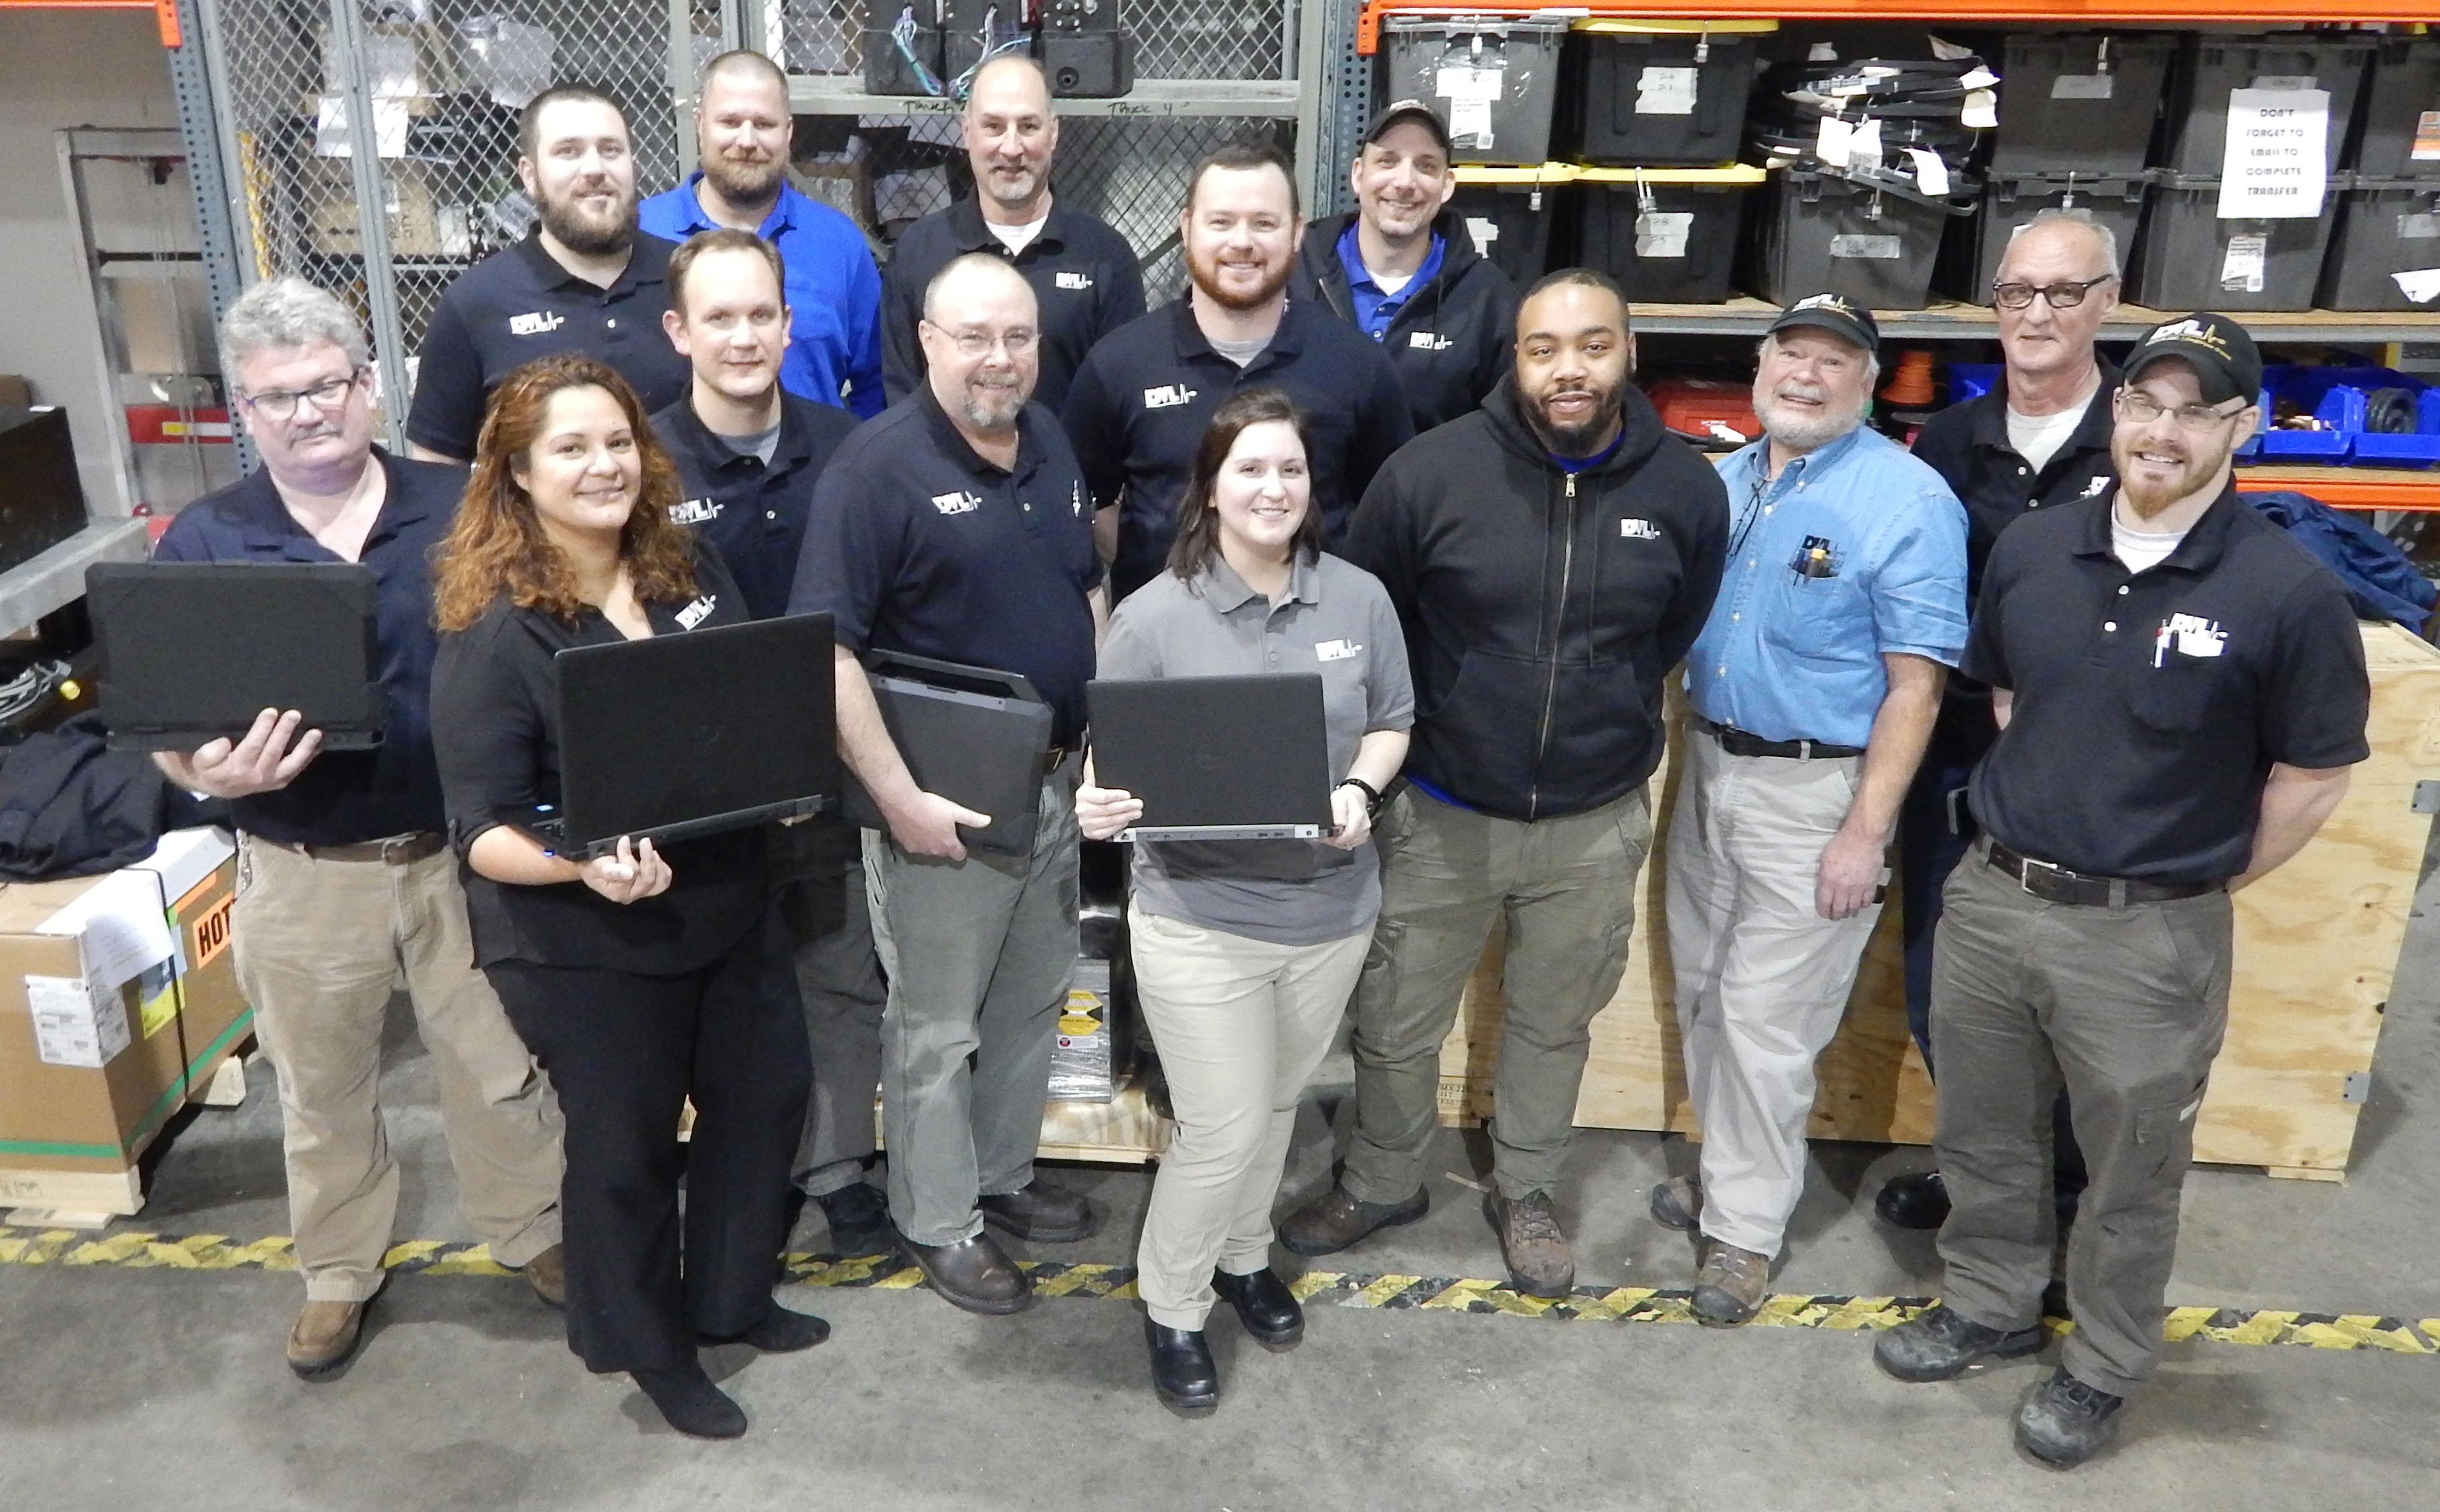 DVL Group HVAC Service technicians and coordinators. Liebert certified field services experts can service and support your equipment